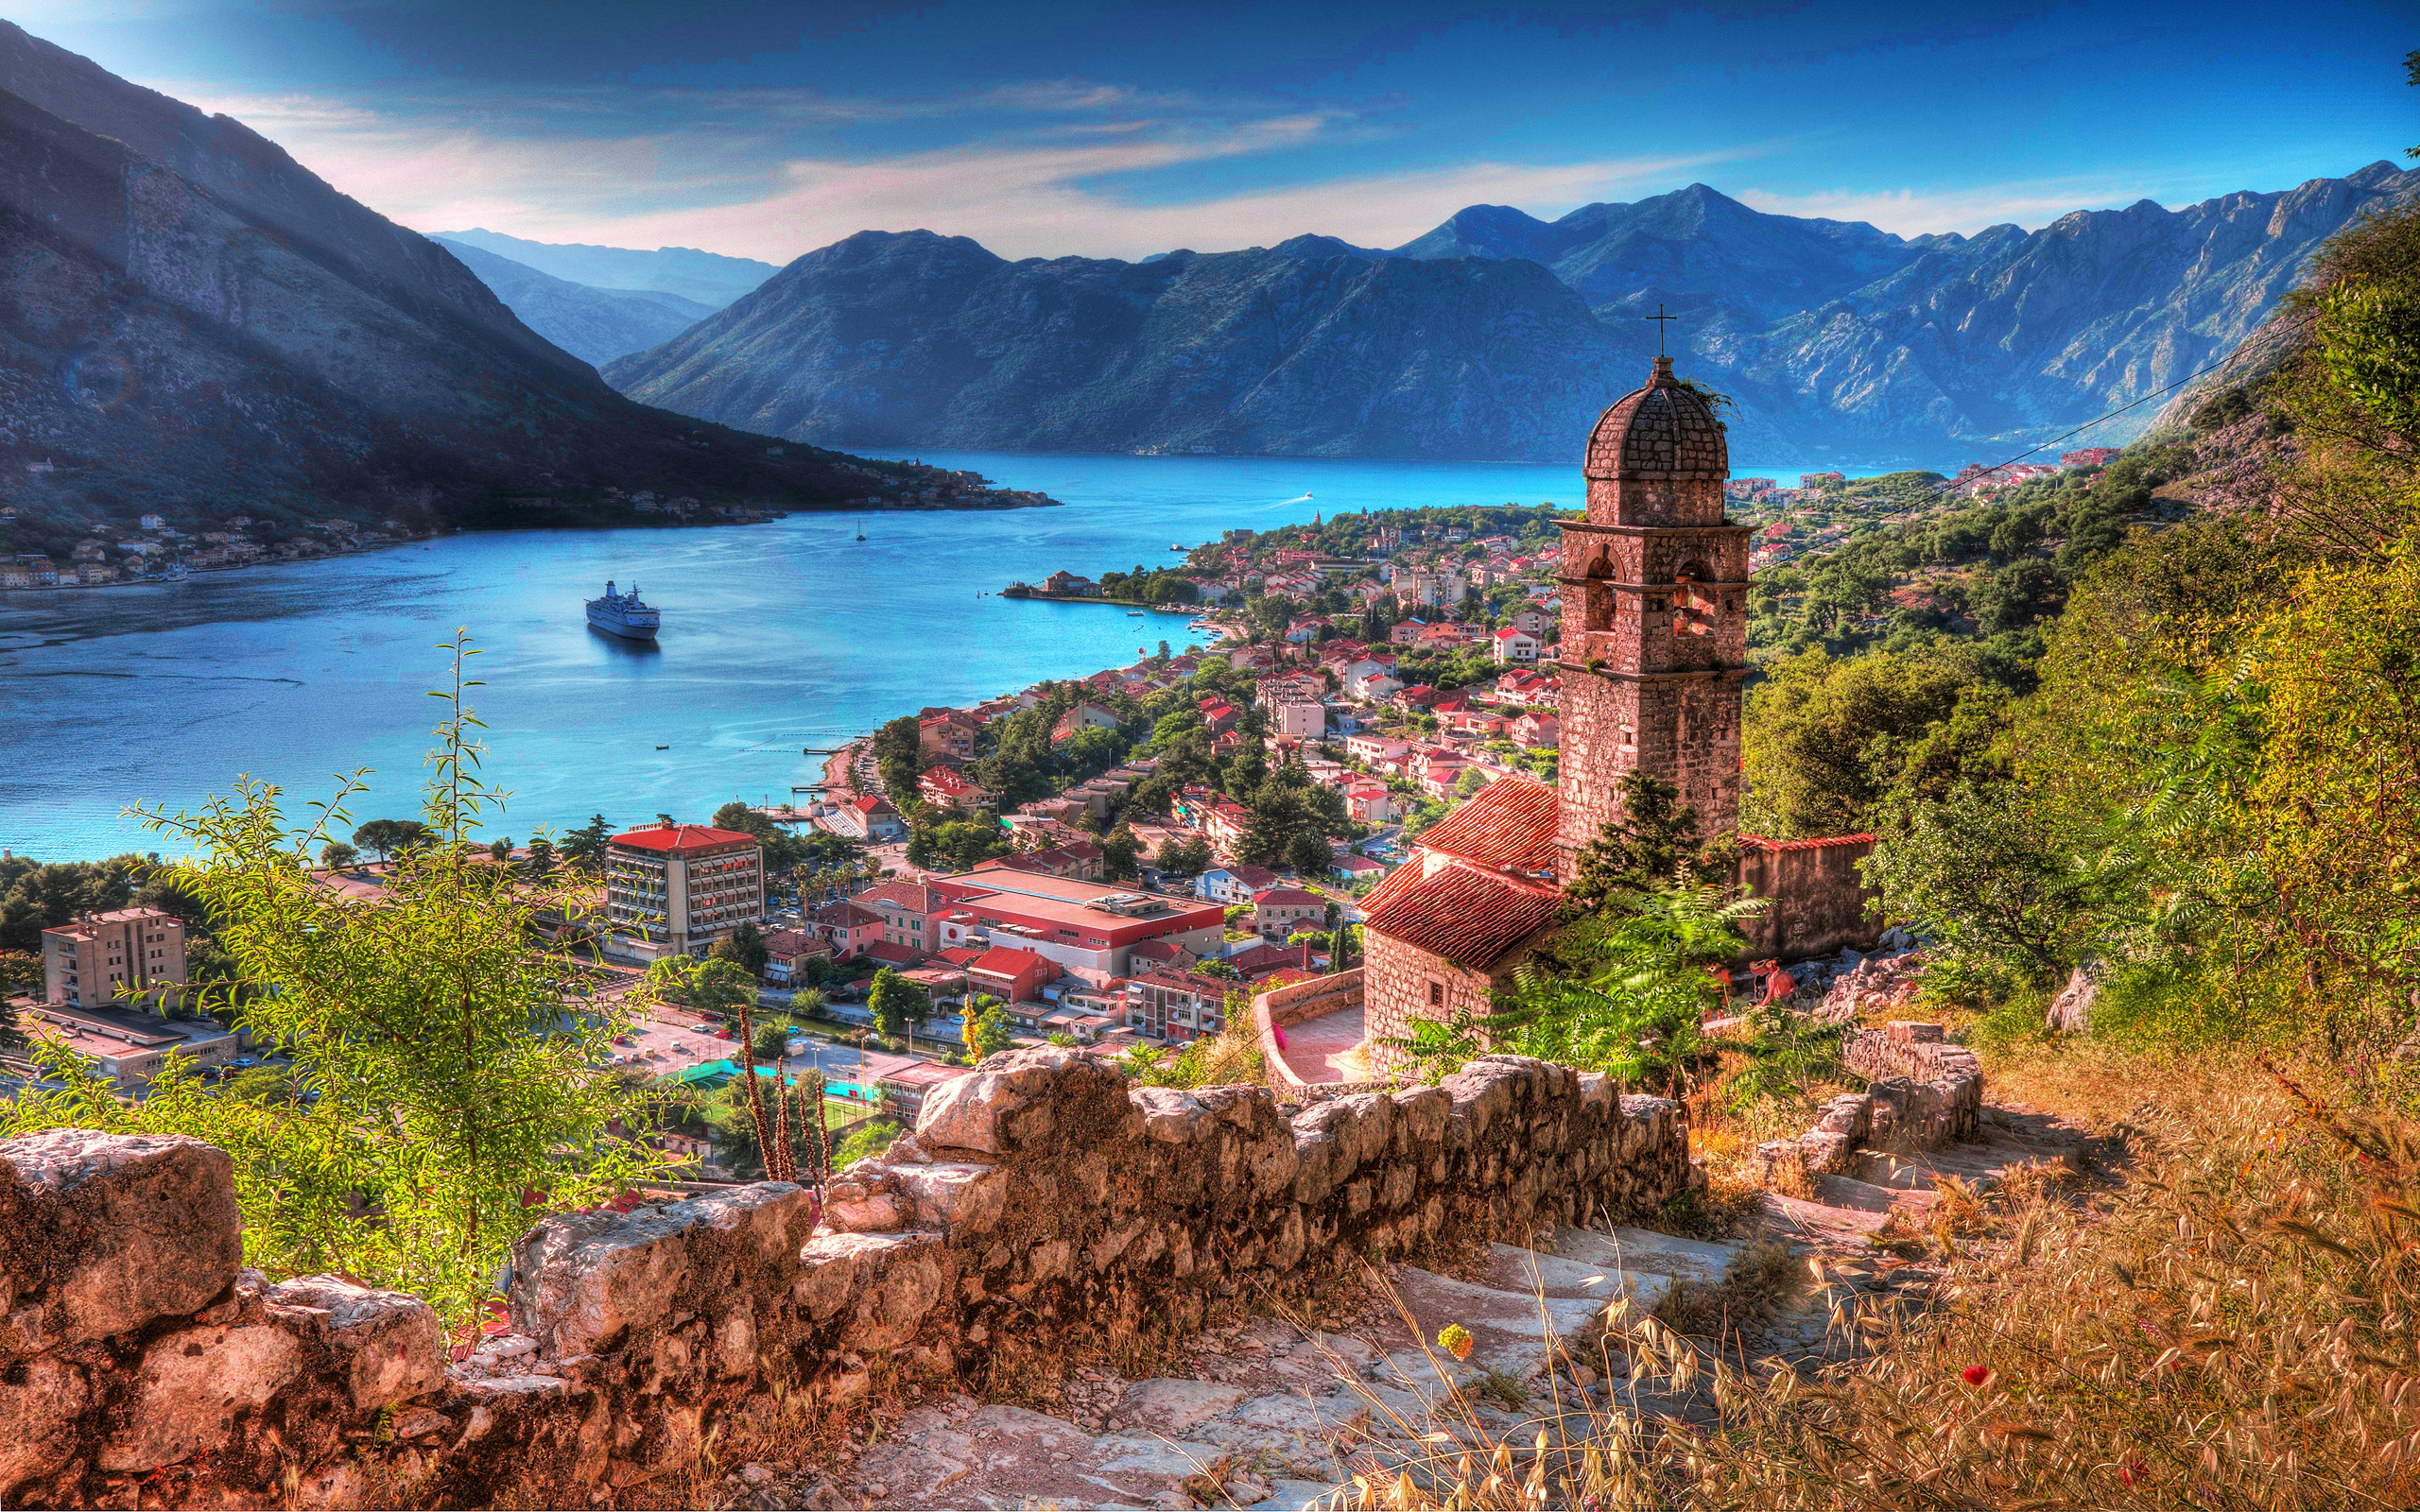 2560x1600 Town of Kotor in Montenegro HD Wallpaper | Hintergrund |  |  ID:705700 - Wallpaper Abyss